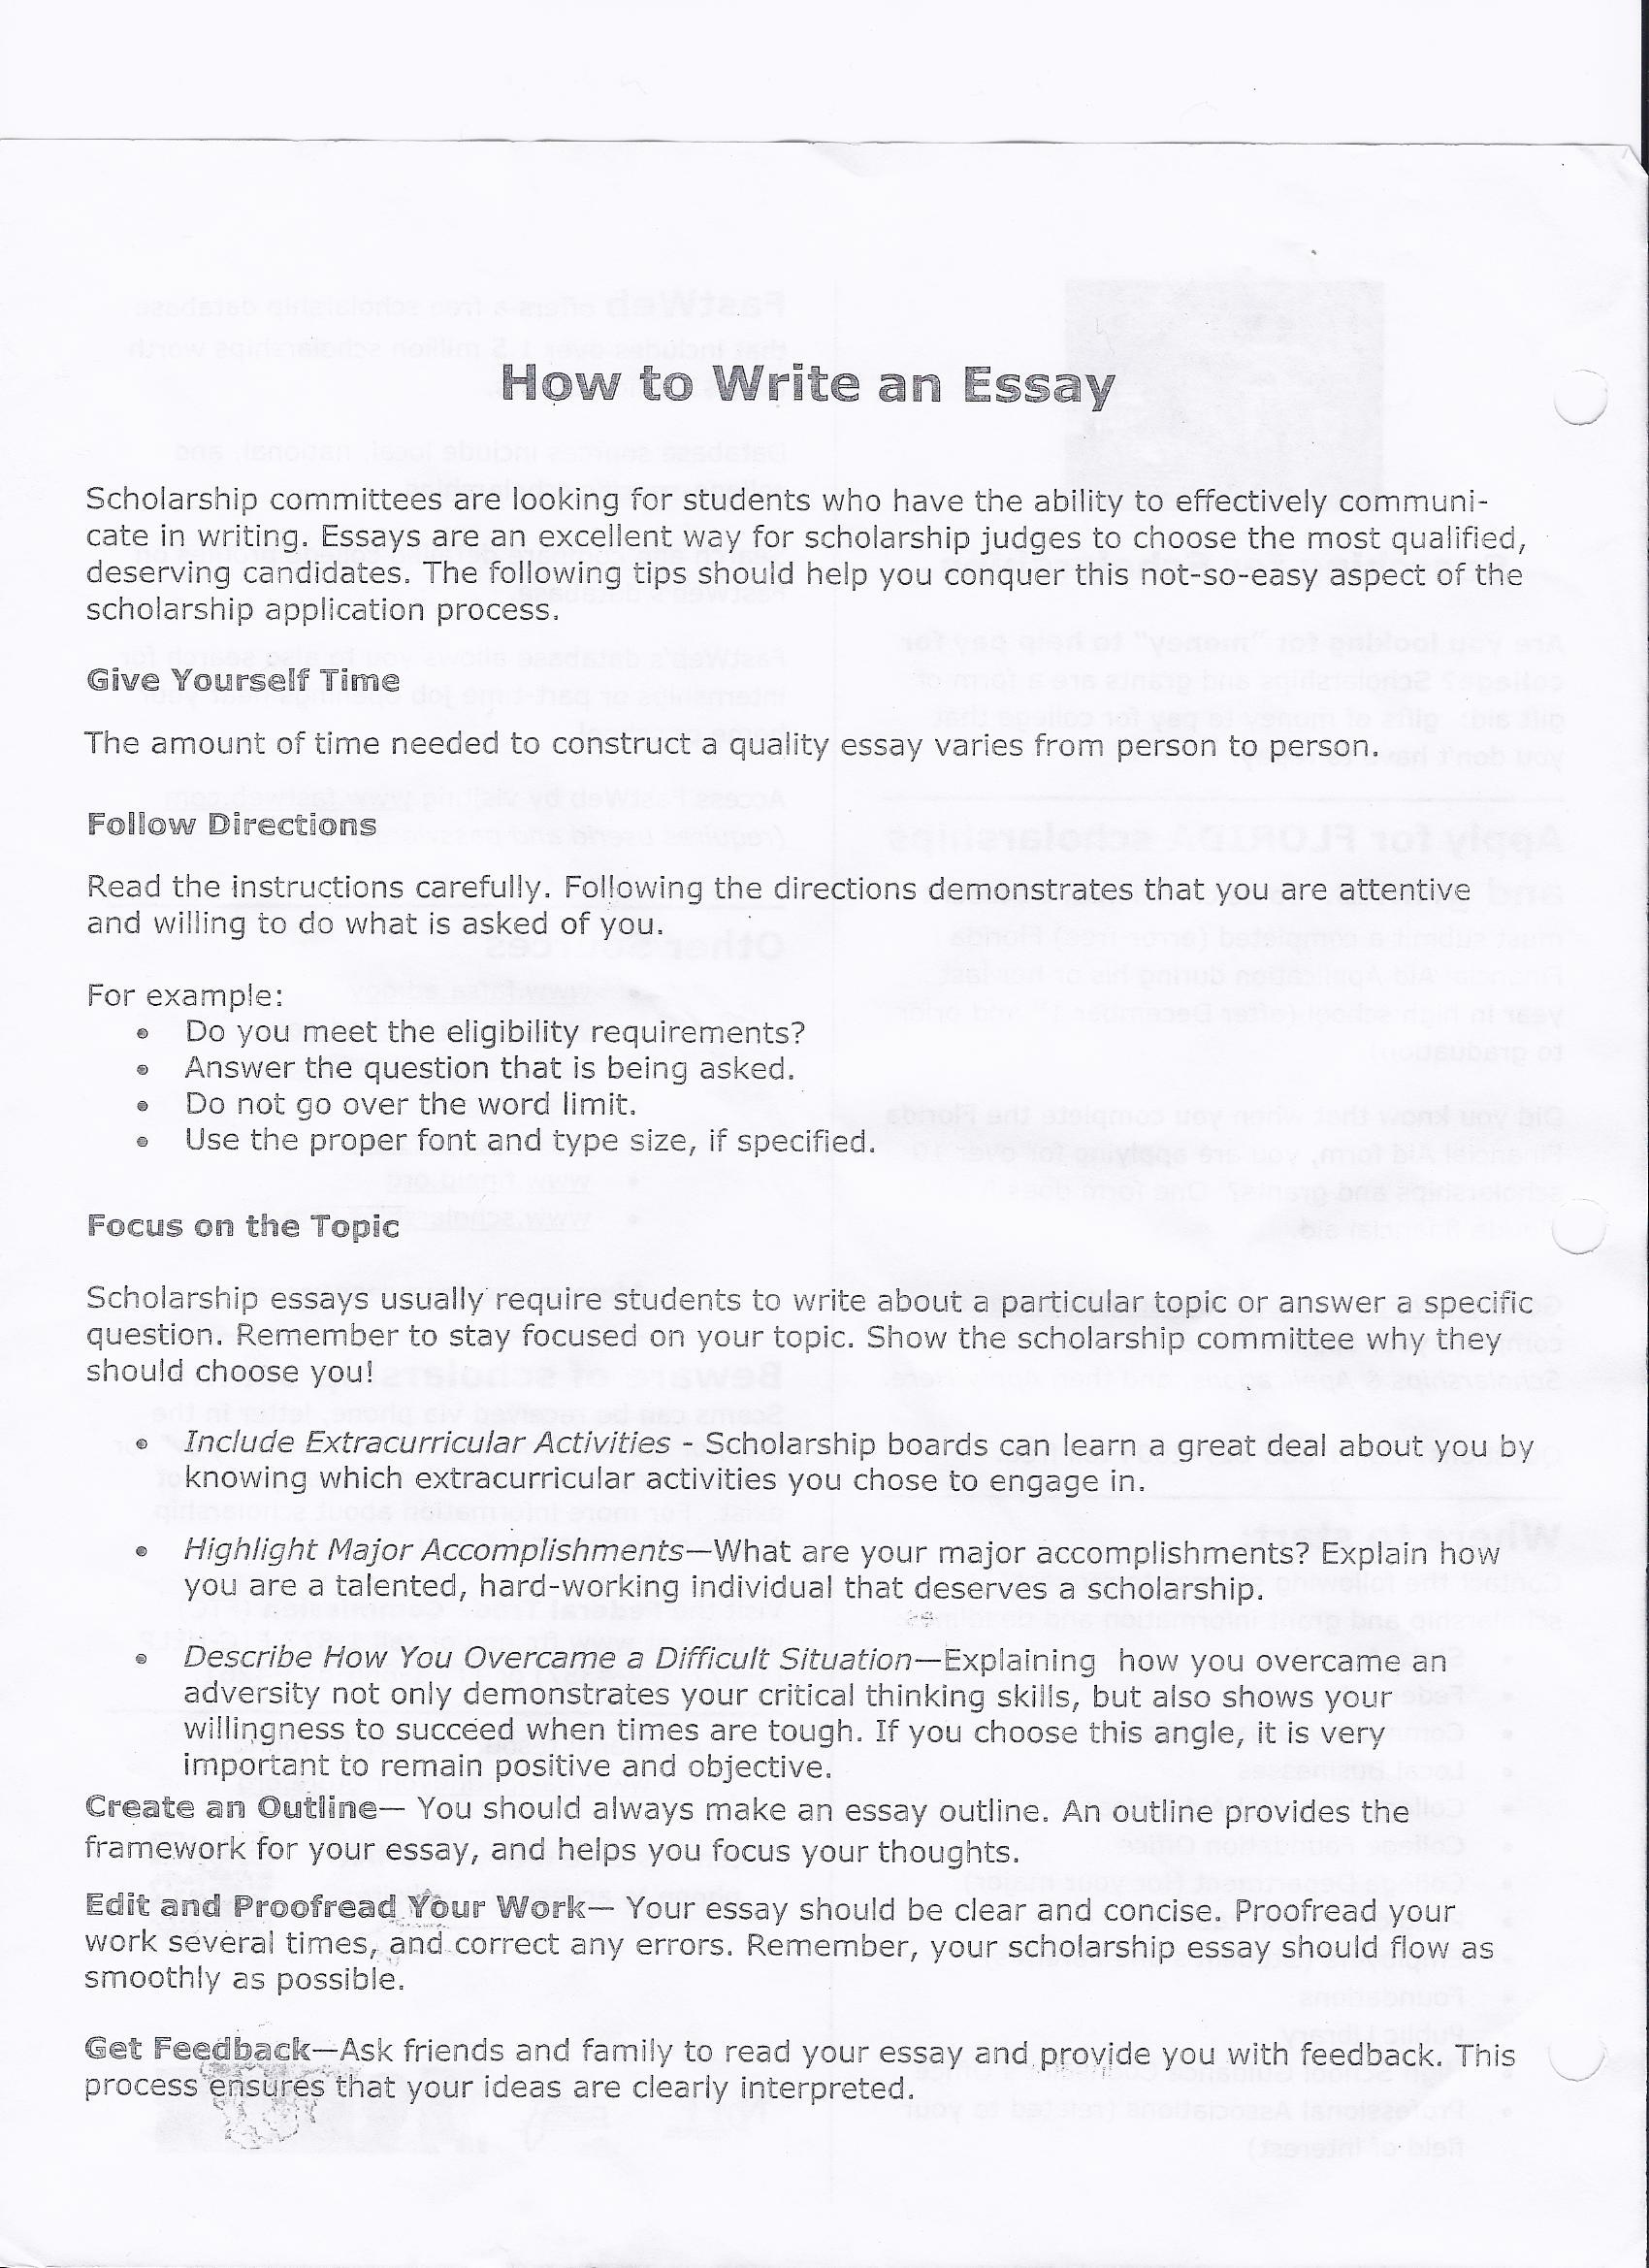 How do you research for essays?